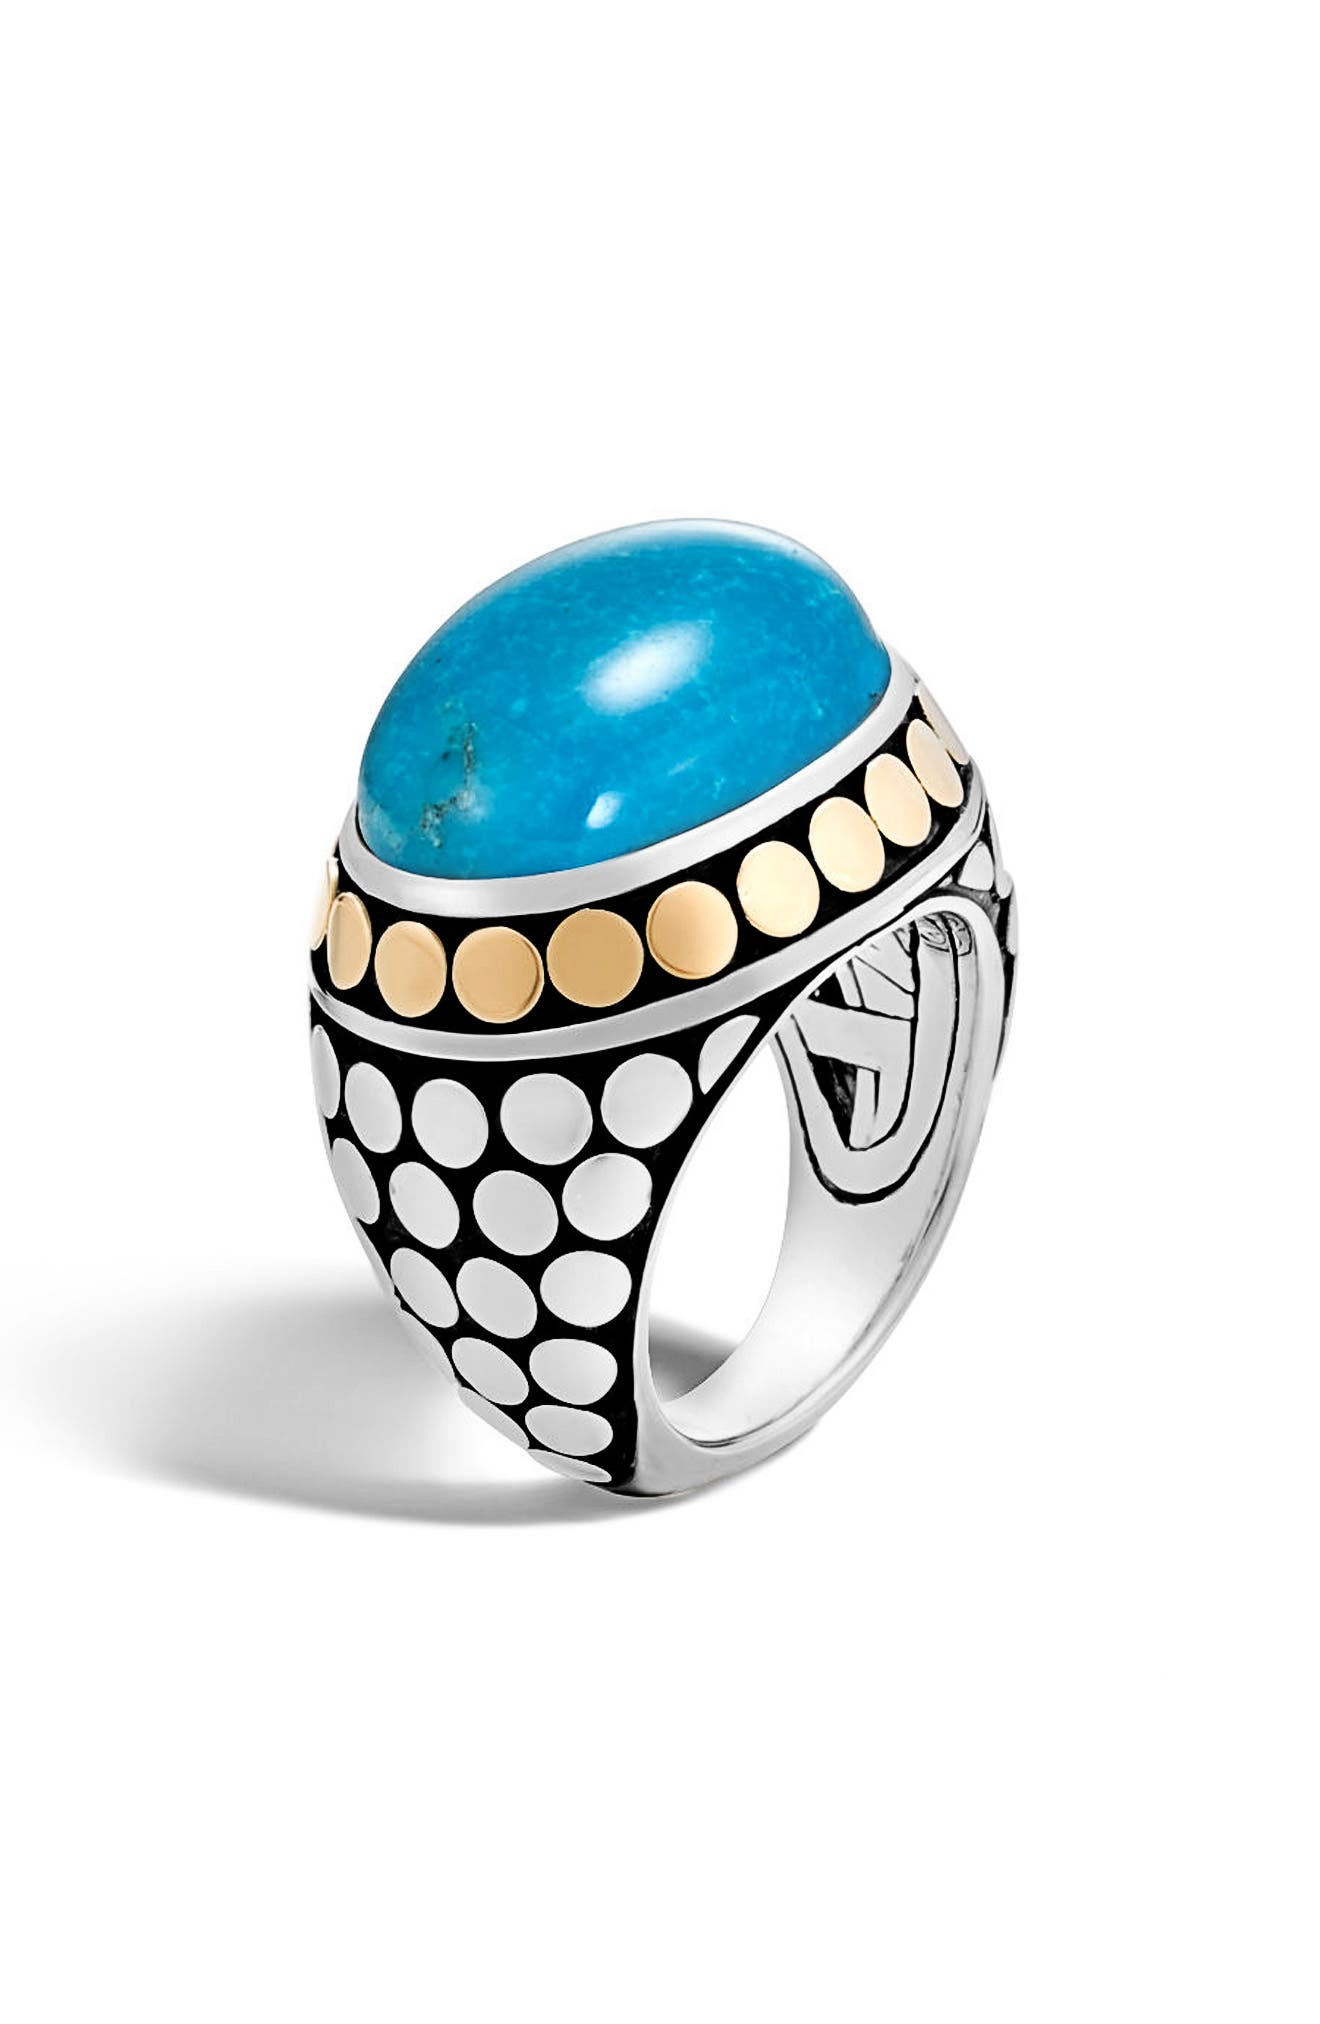 Dot Silver & Turquoise Dome Ring,                             Main thumbnail 1, color,                             SILVER/ GOLD/ TURQUOISE